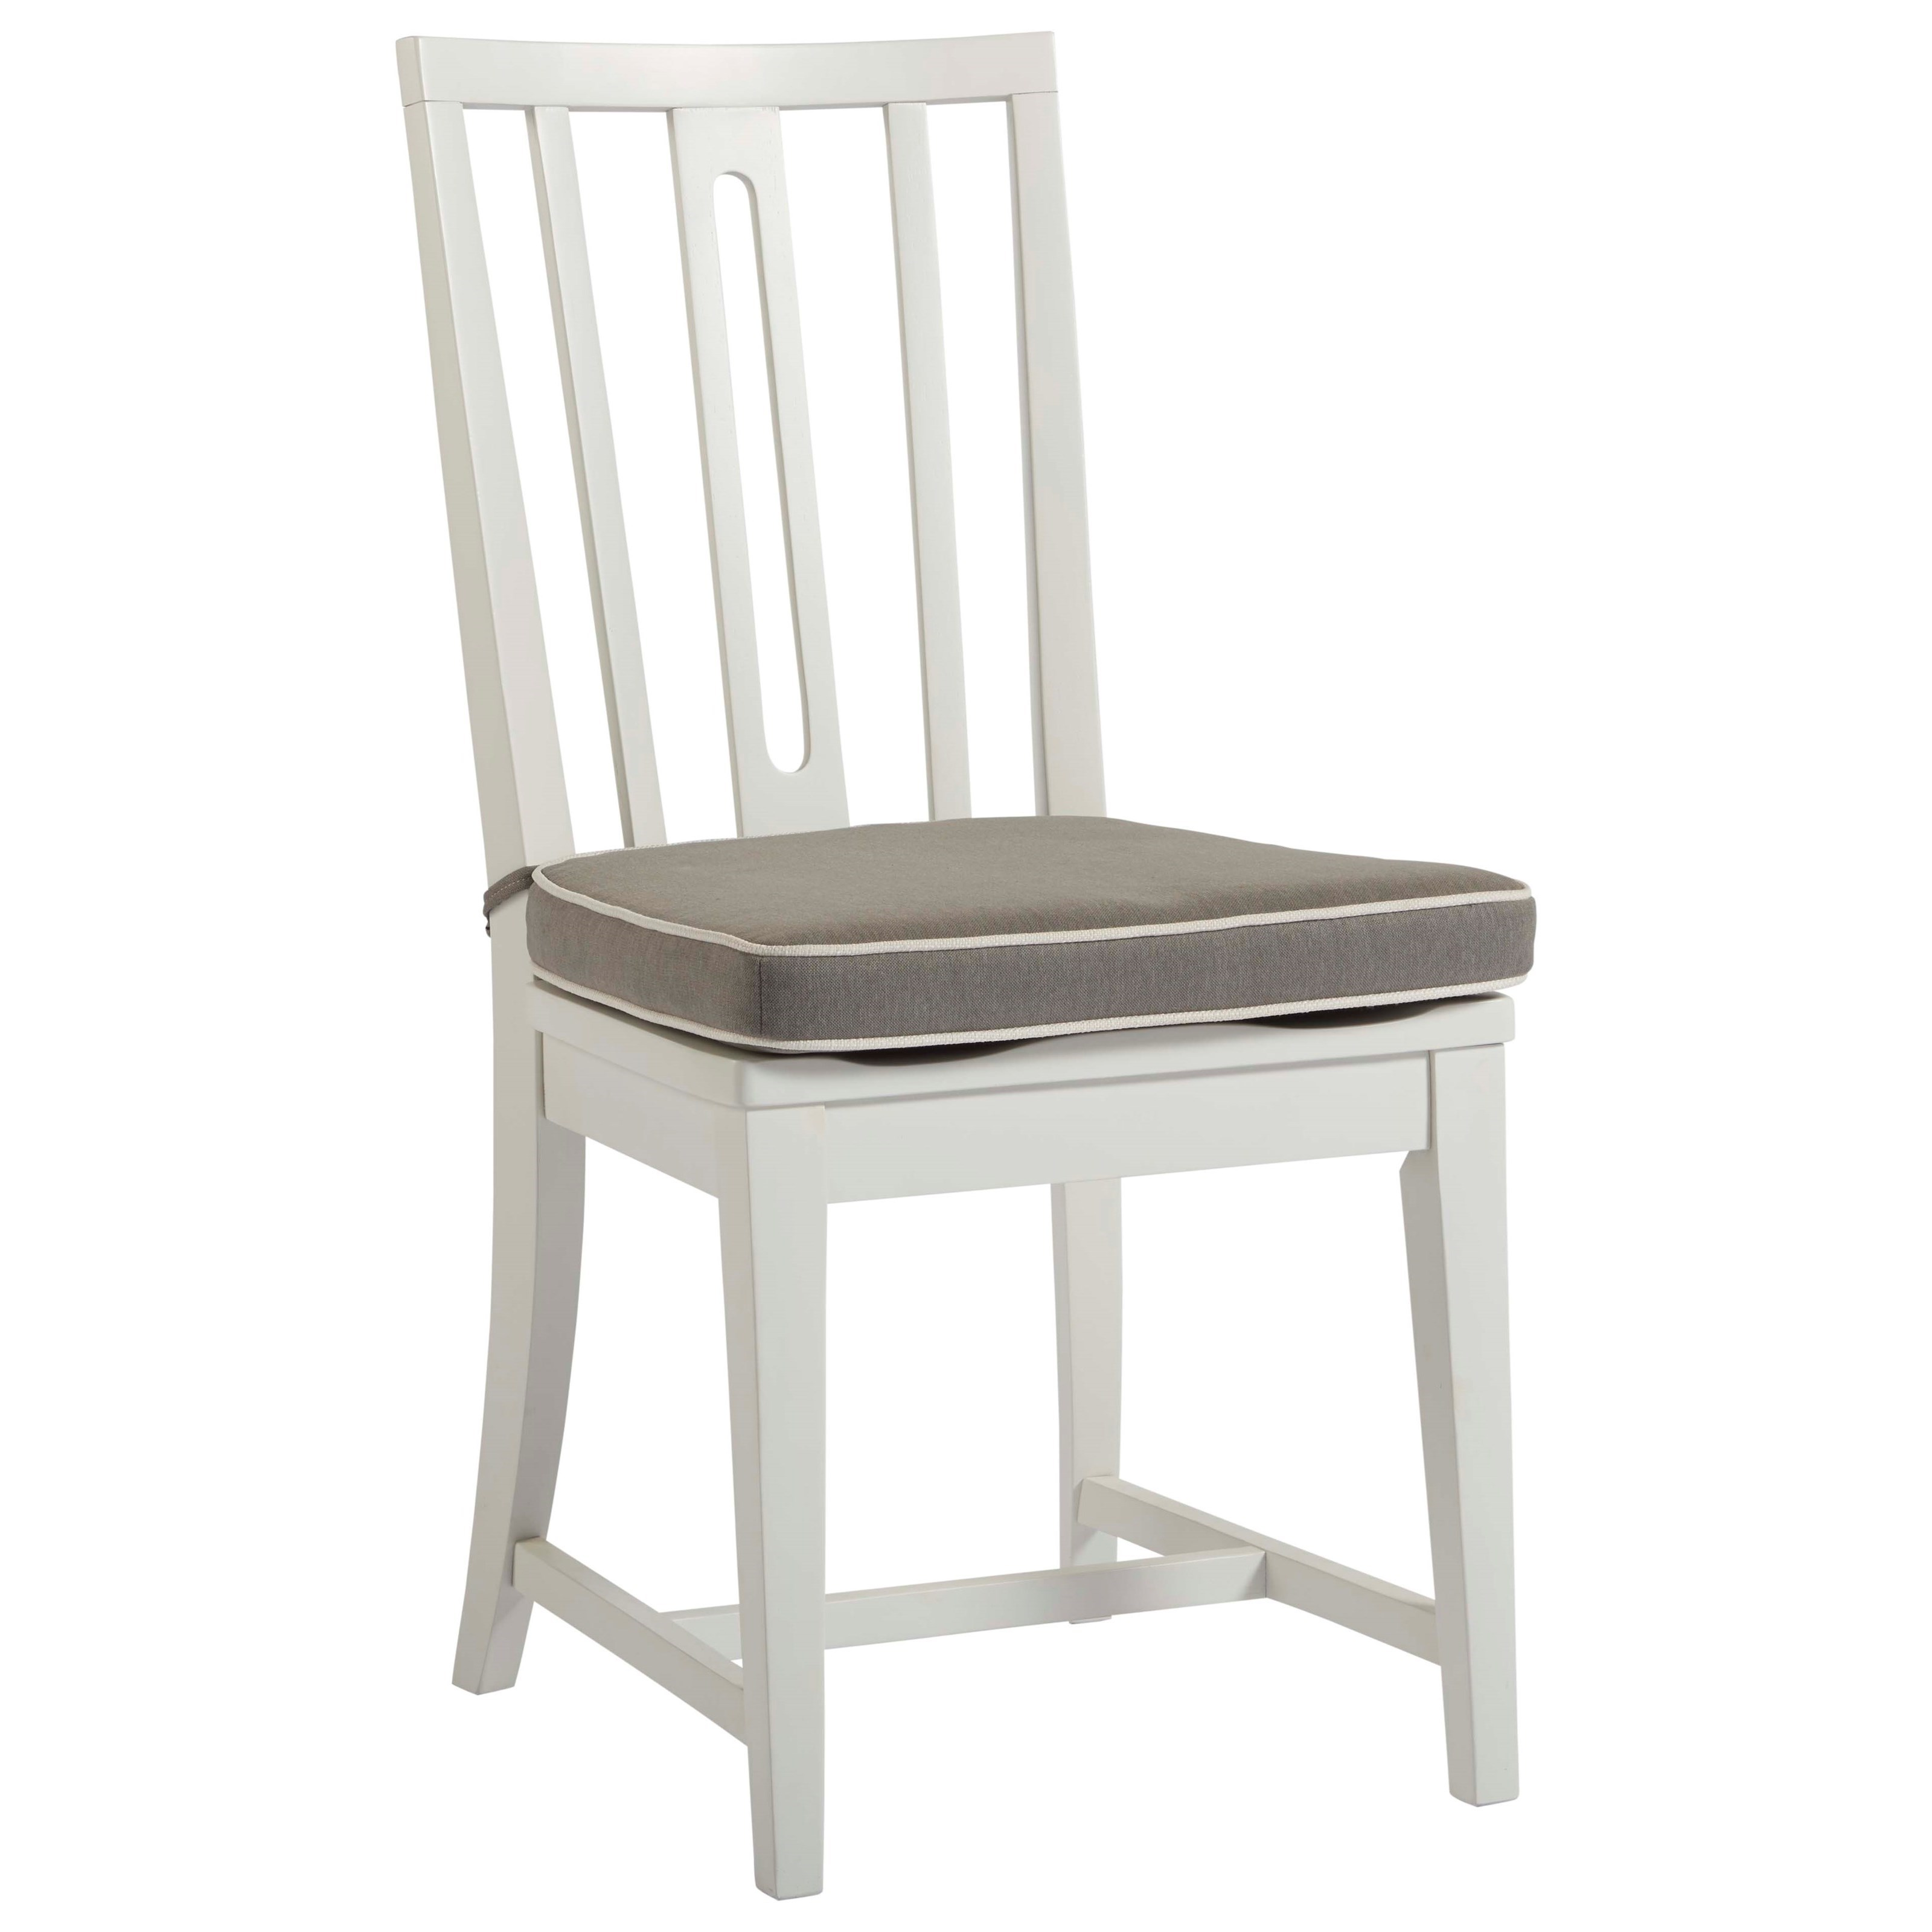 Coastal Living Home - Escape Kitchen Chair by Universal at Baer's Furniture